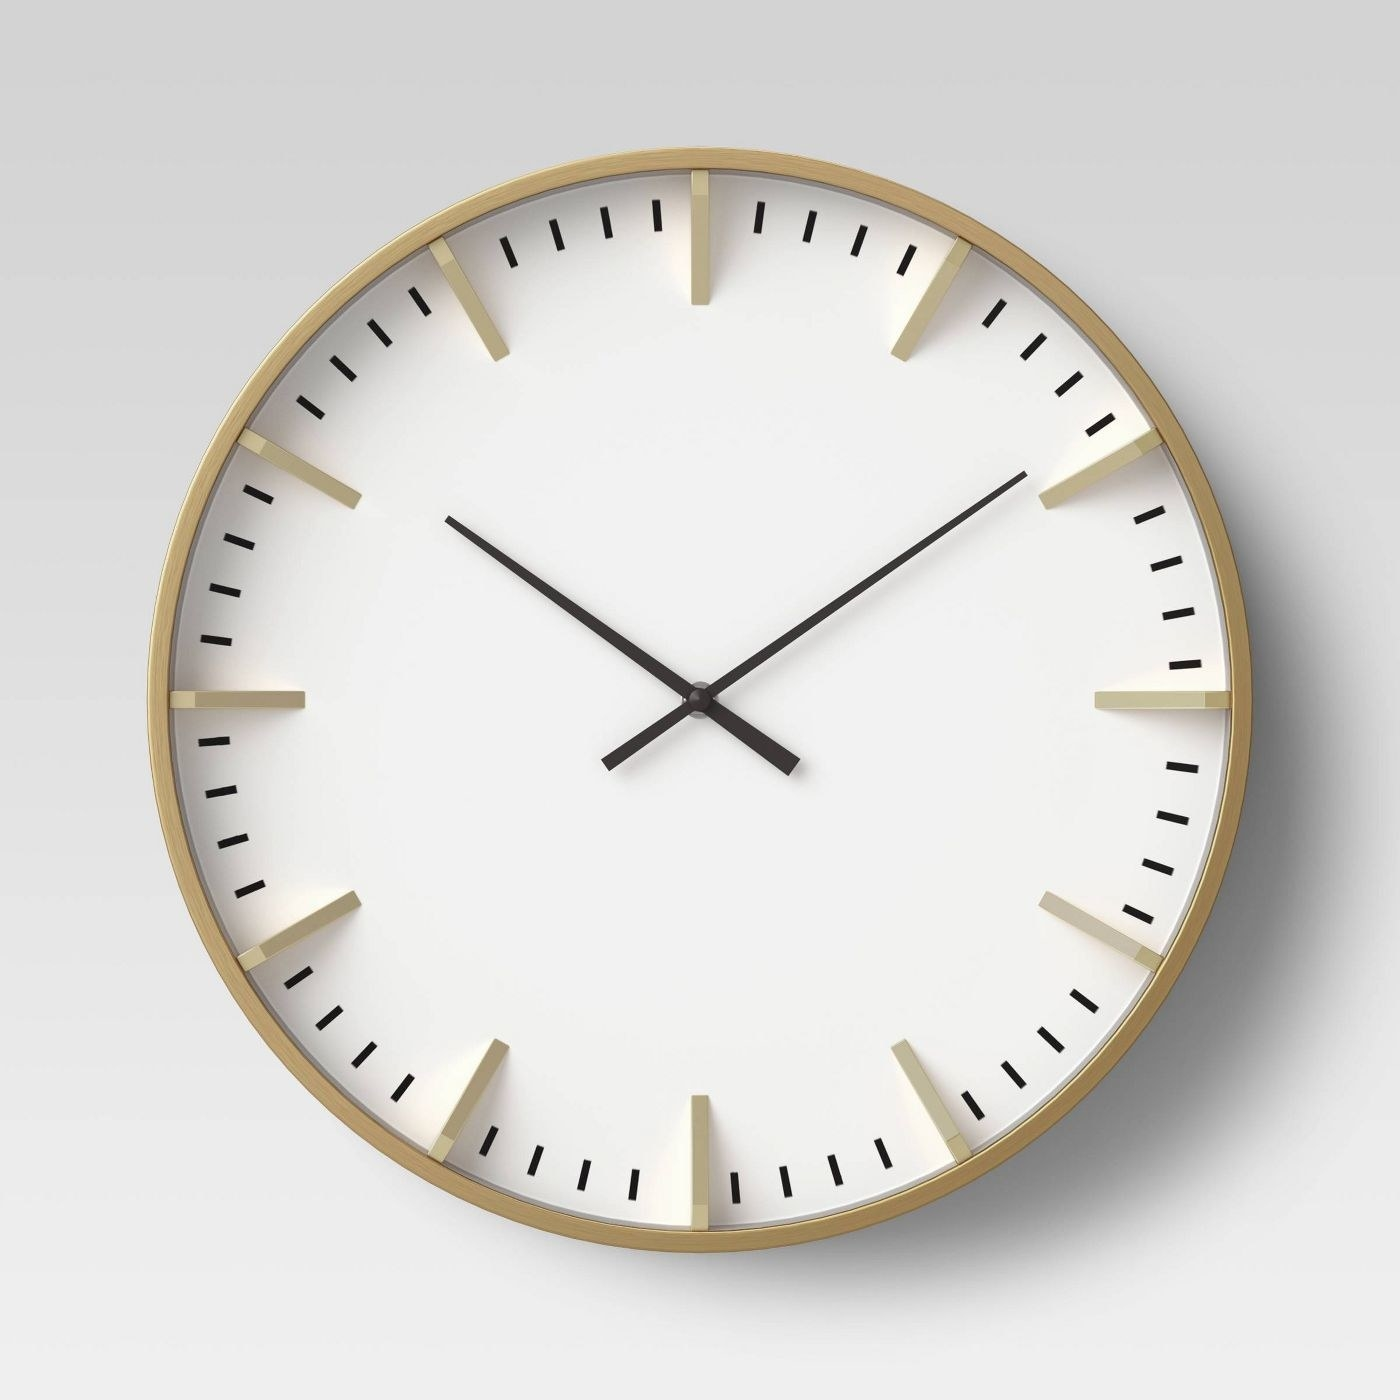 The clock, which is round, with a white, numberless face, and a gold tone outer area